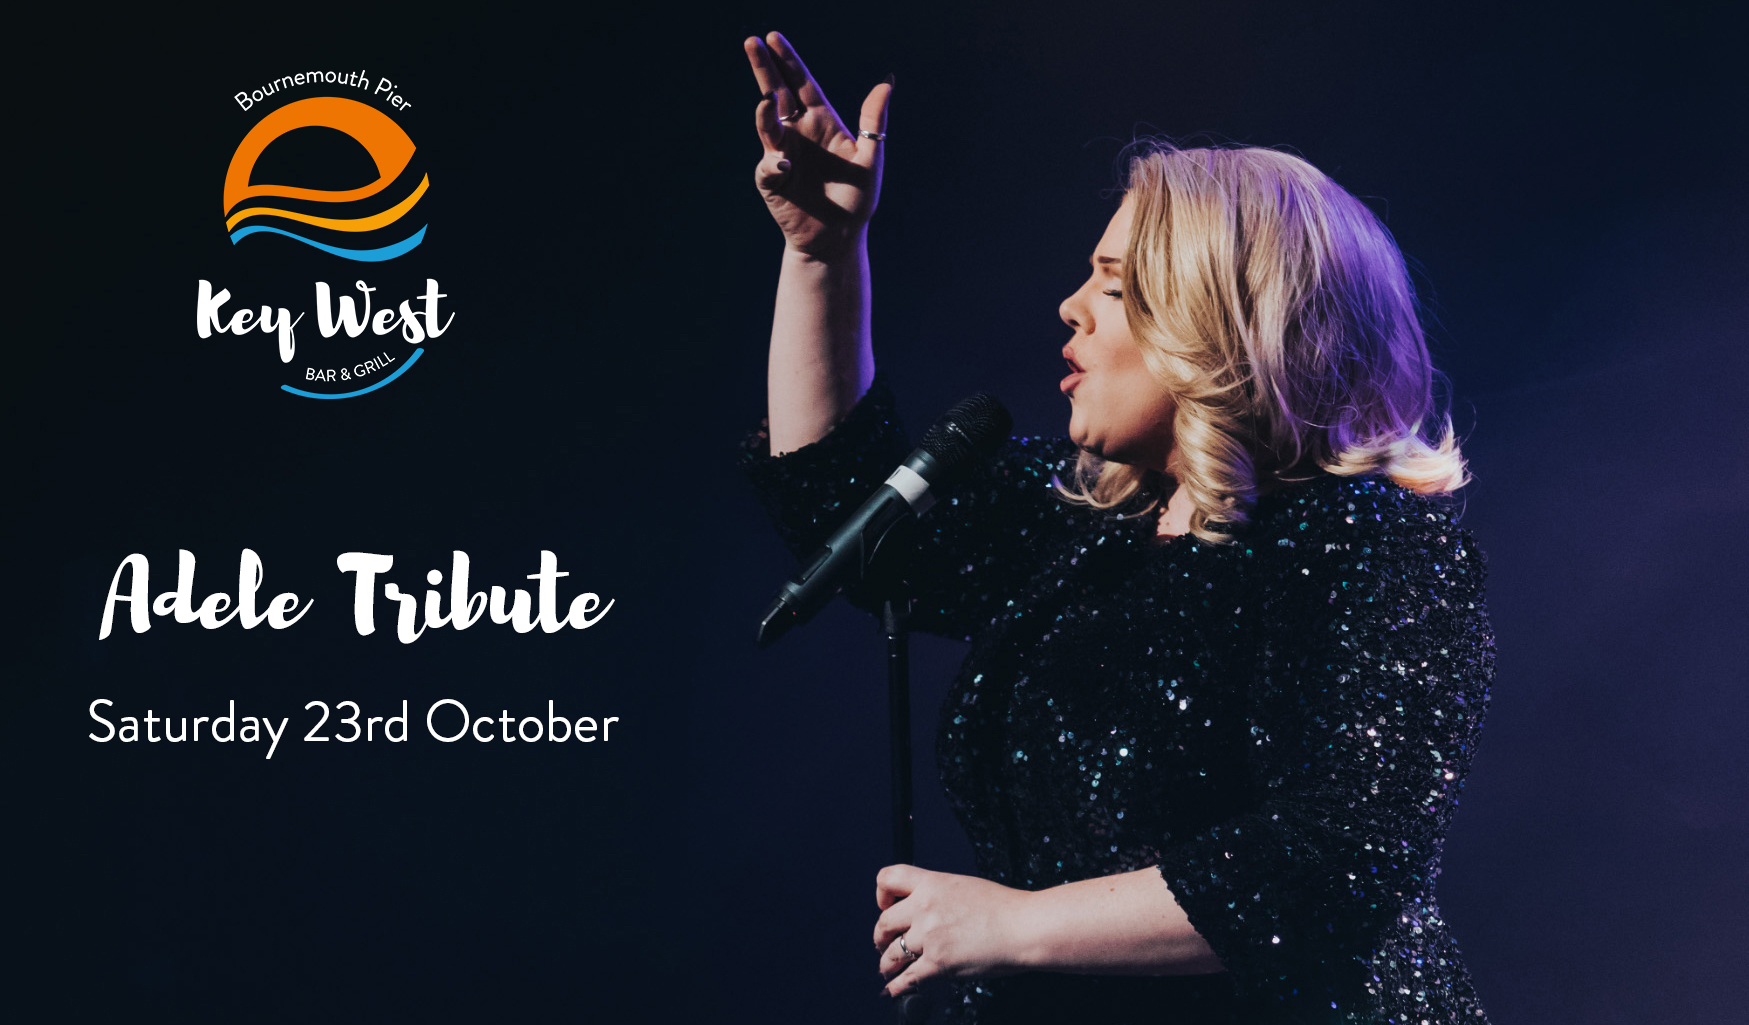 Adele Tribute Singing and Event Date